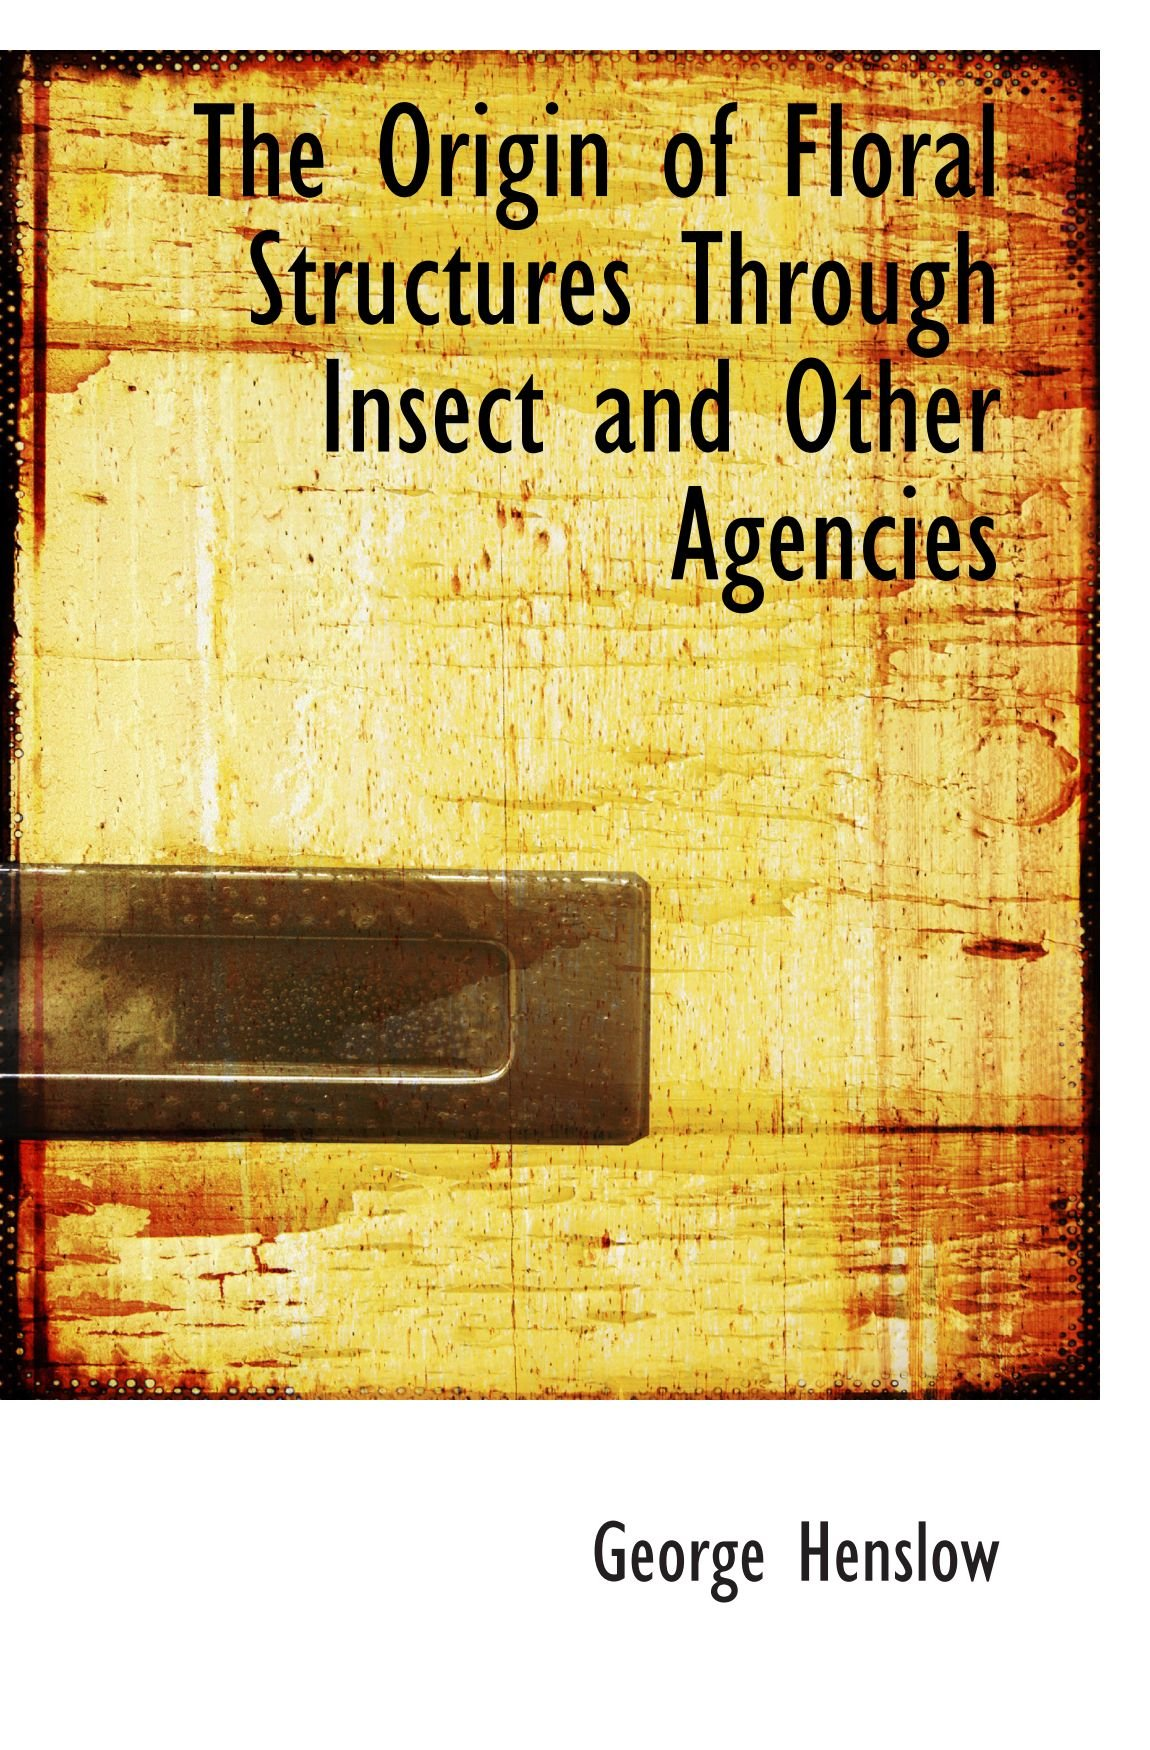 Download The Origin of Floral Structures Through Insect and Other Agencies PDF